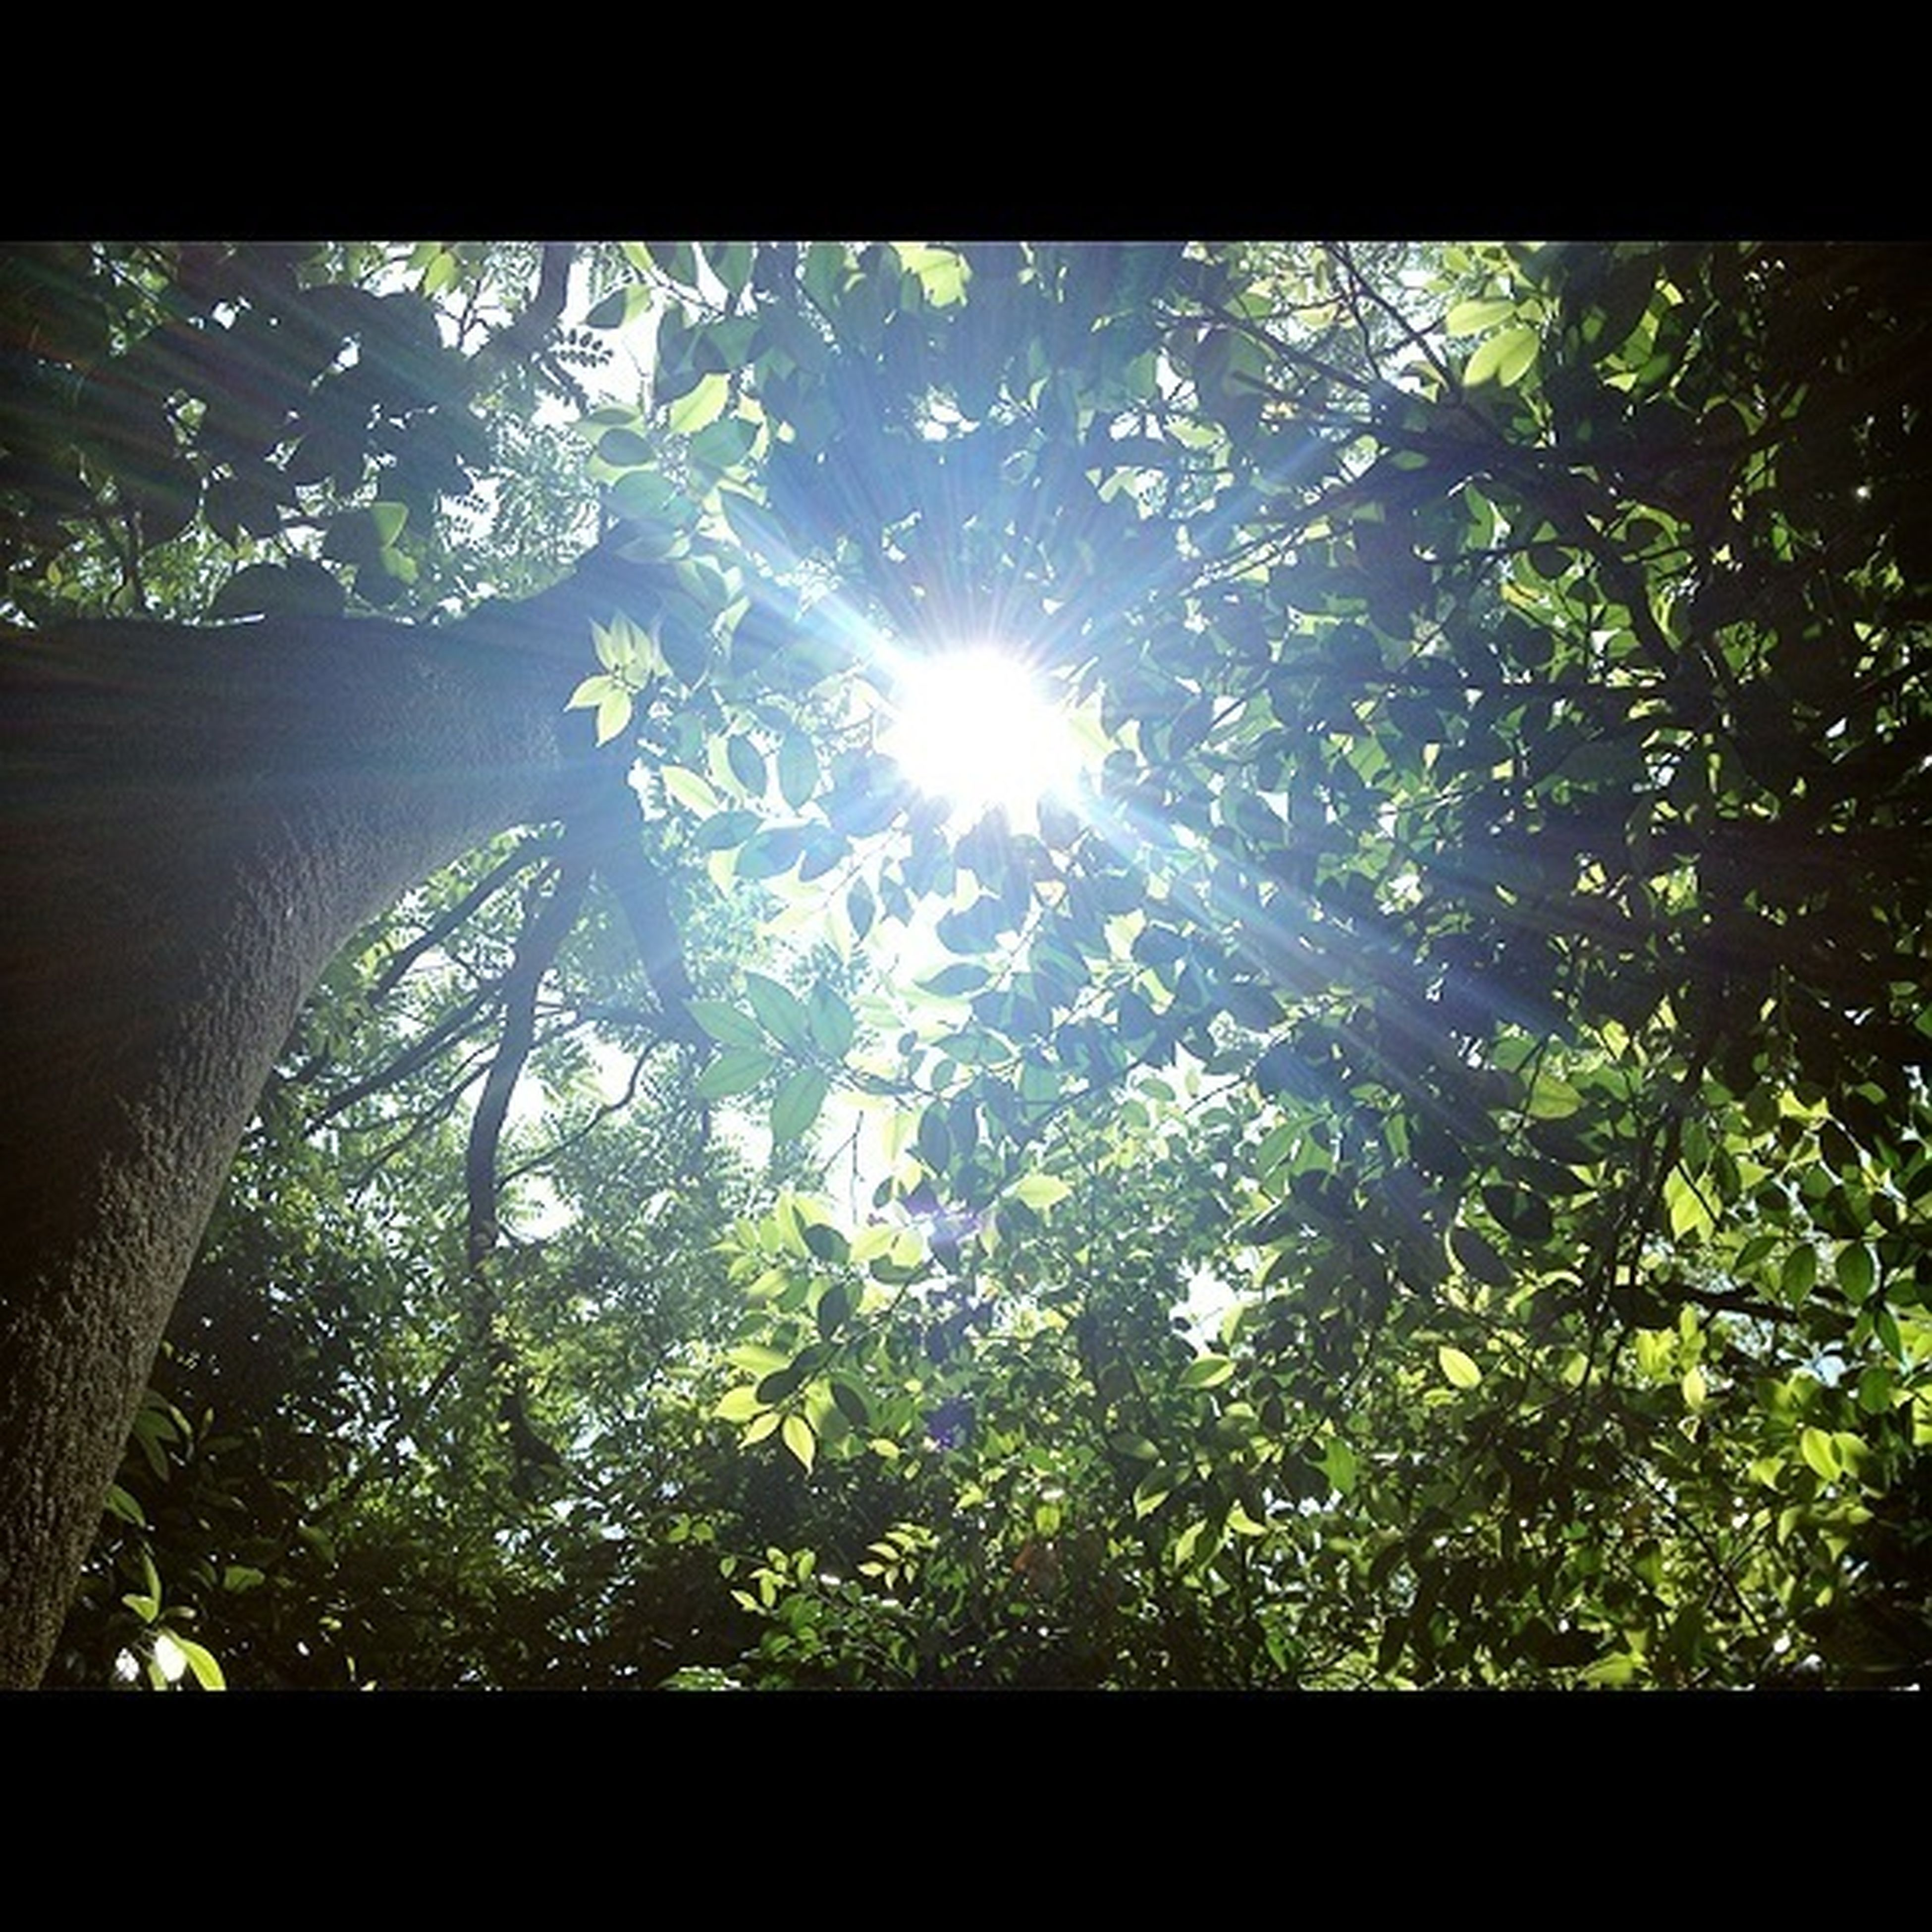 tree, low angle view, growth, sun, branch, sunlight, sunbeam, nature, transfer print, beauty in nature, tranquility, lens flare, auto post production filter, green color, sky, day, forest, leaf, no people, sunny